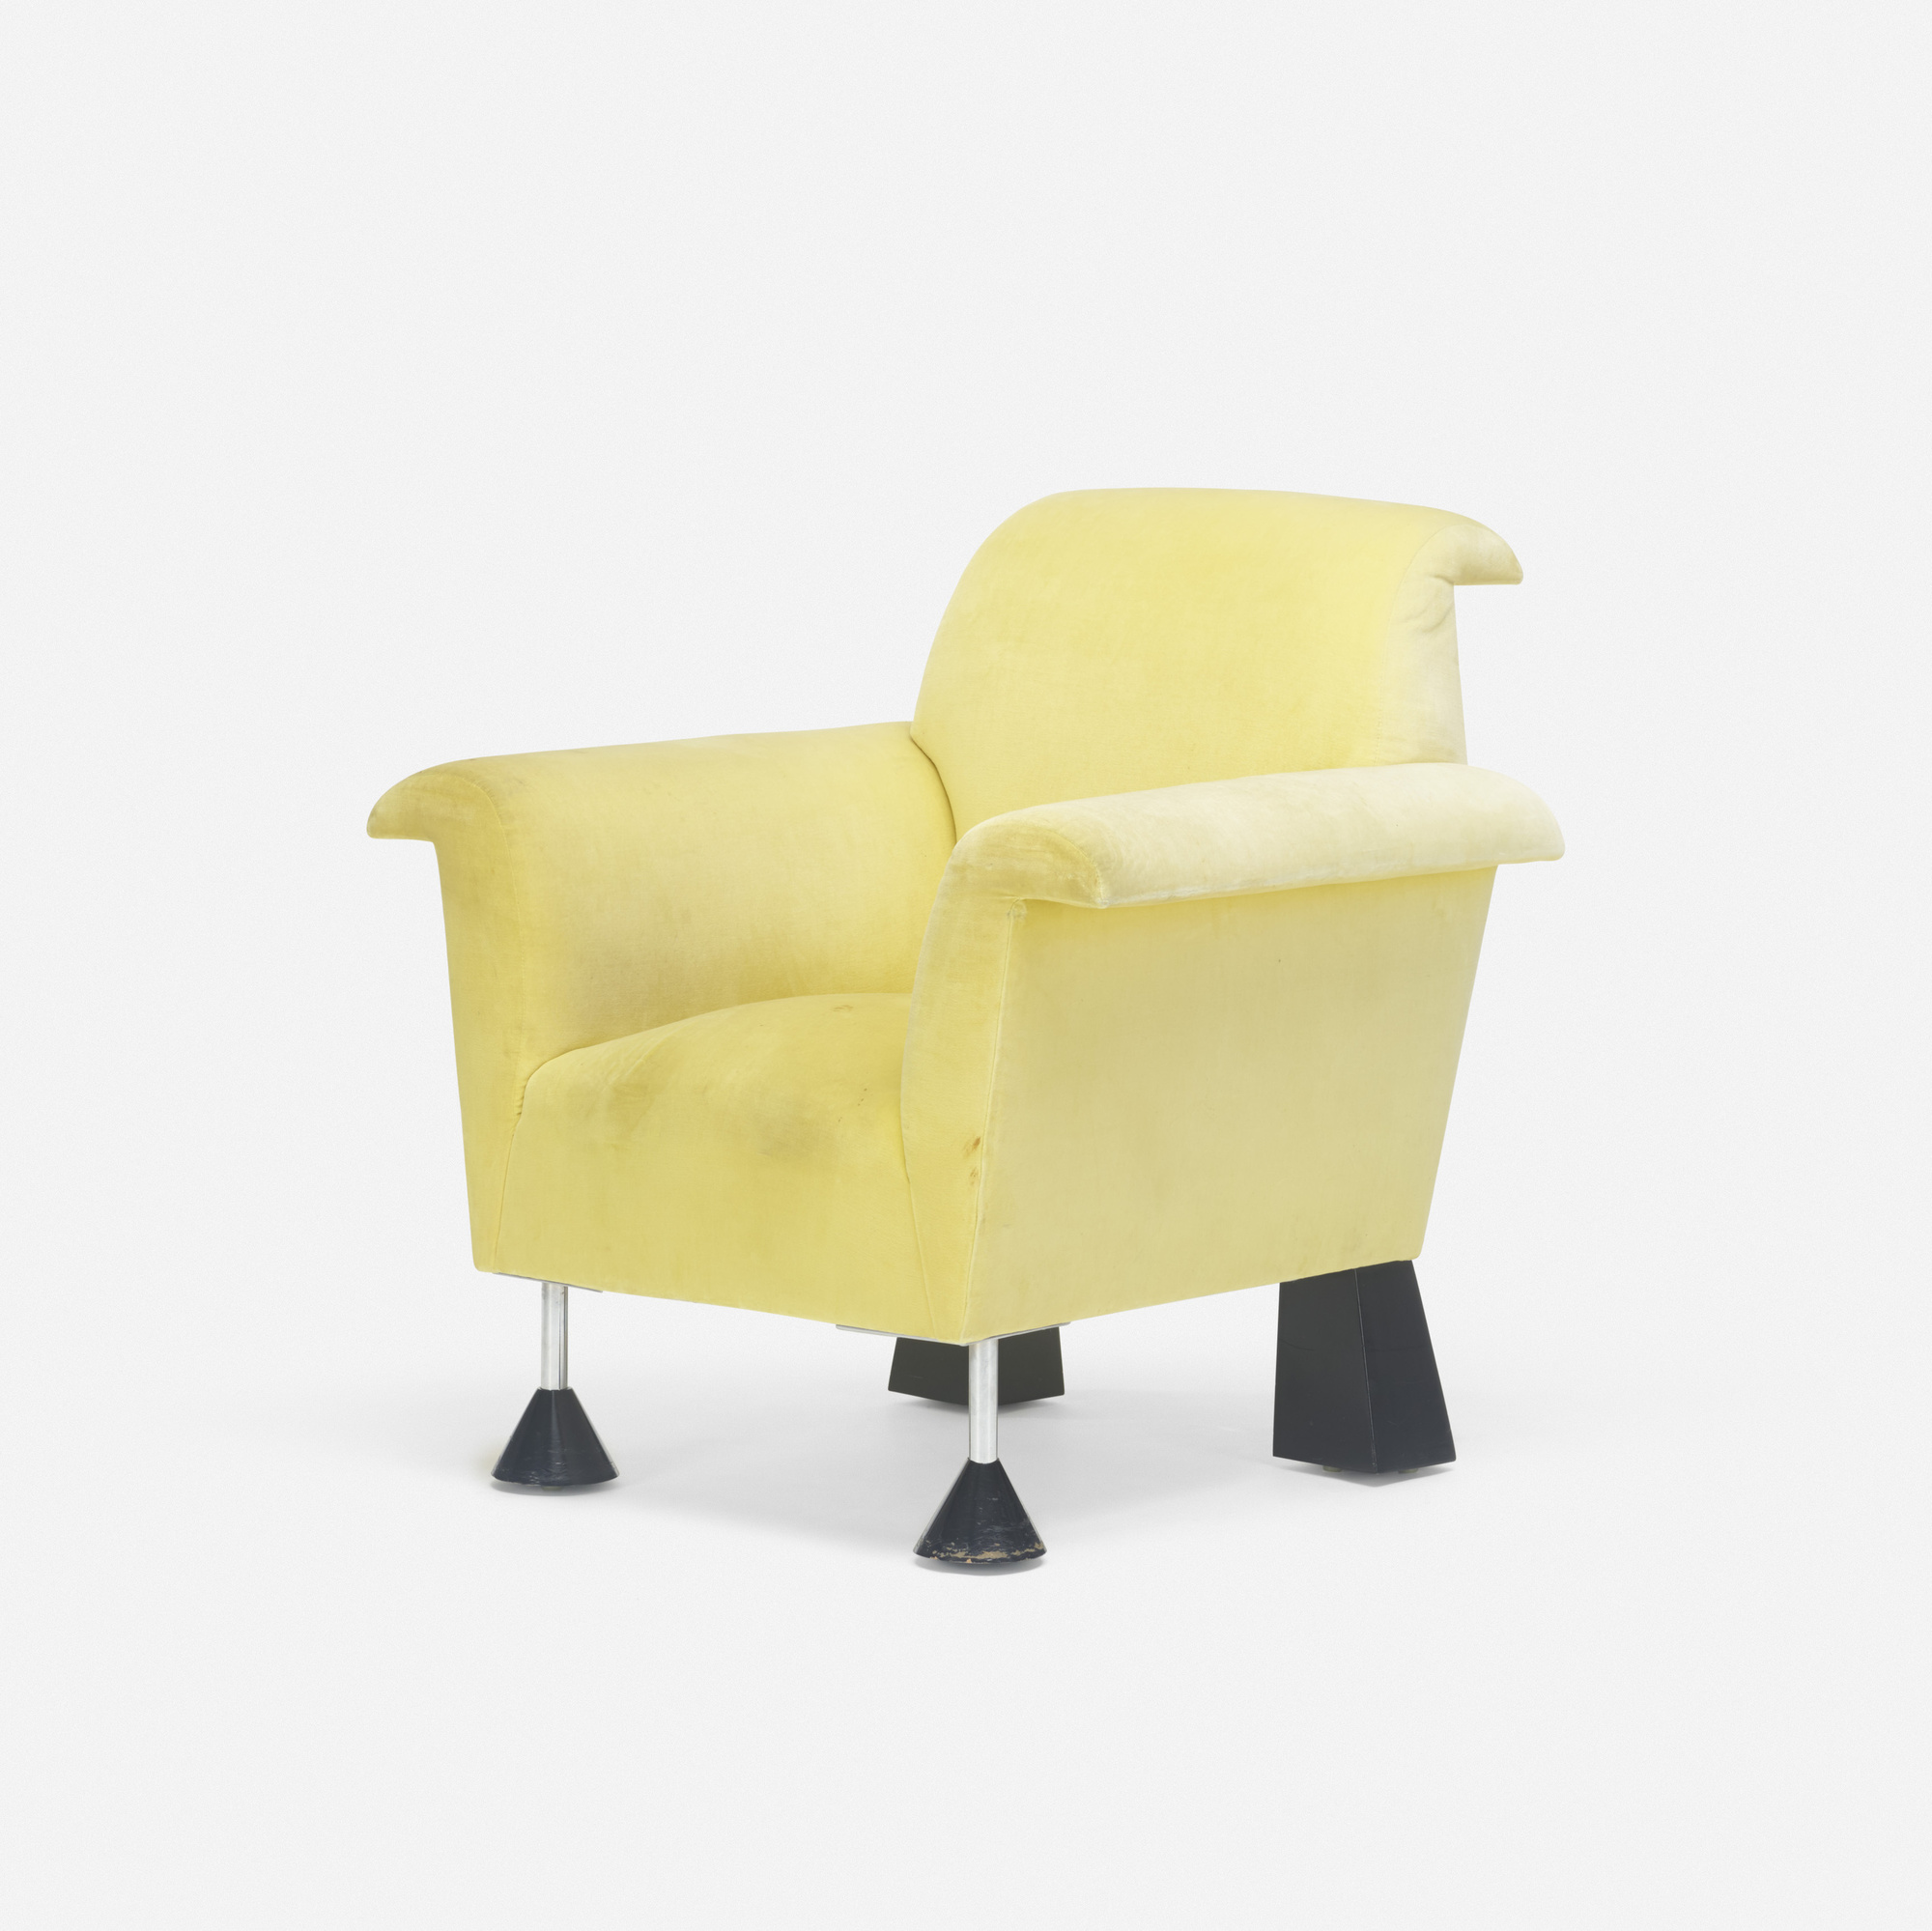 424: Peter Shire / Wexler lounge chair (1 of 2)